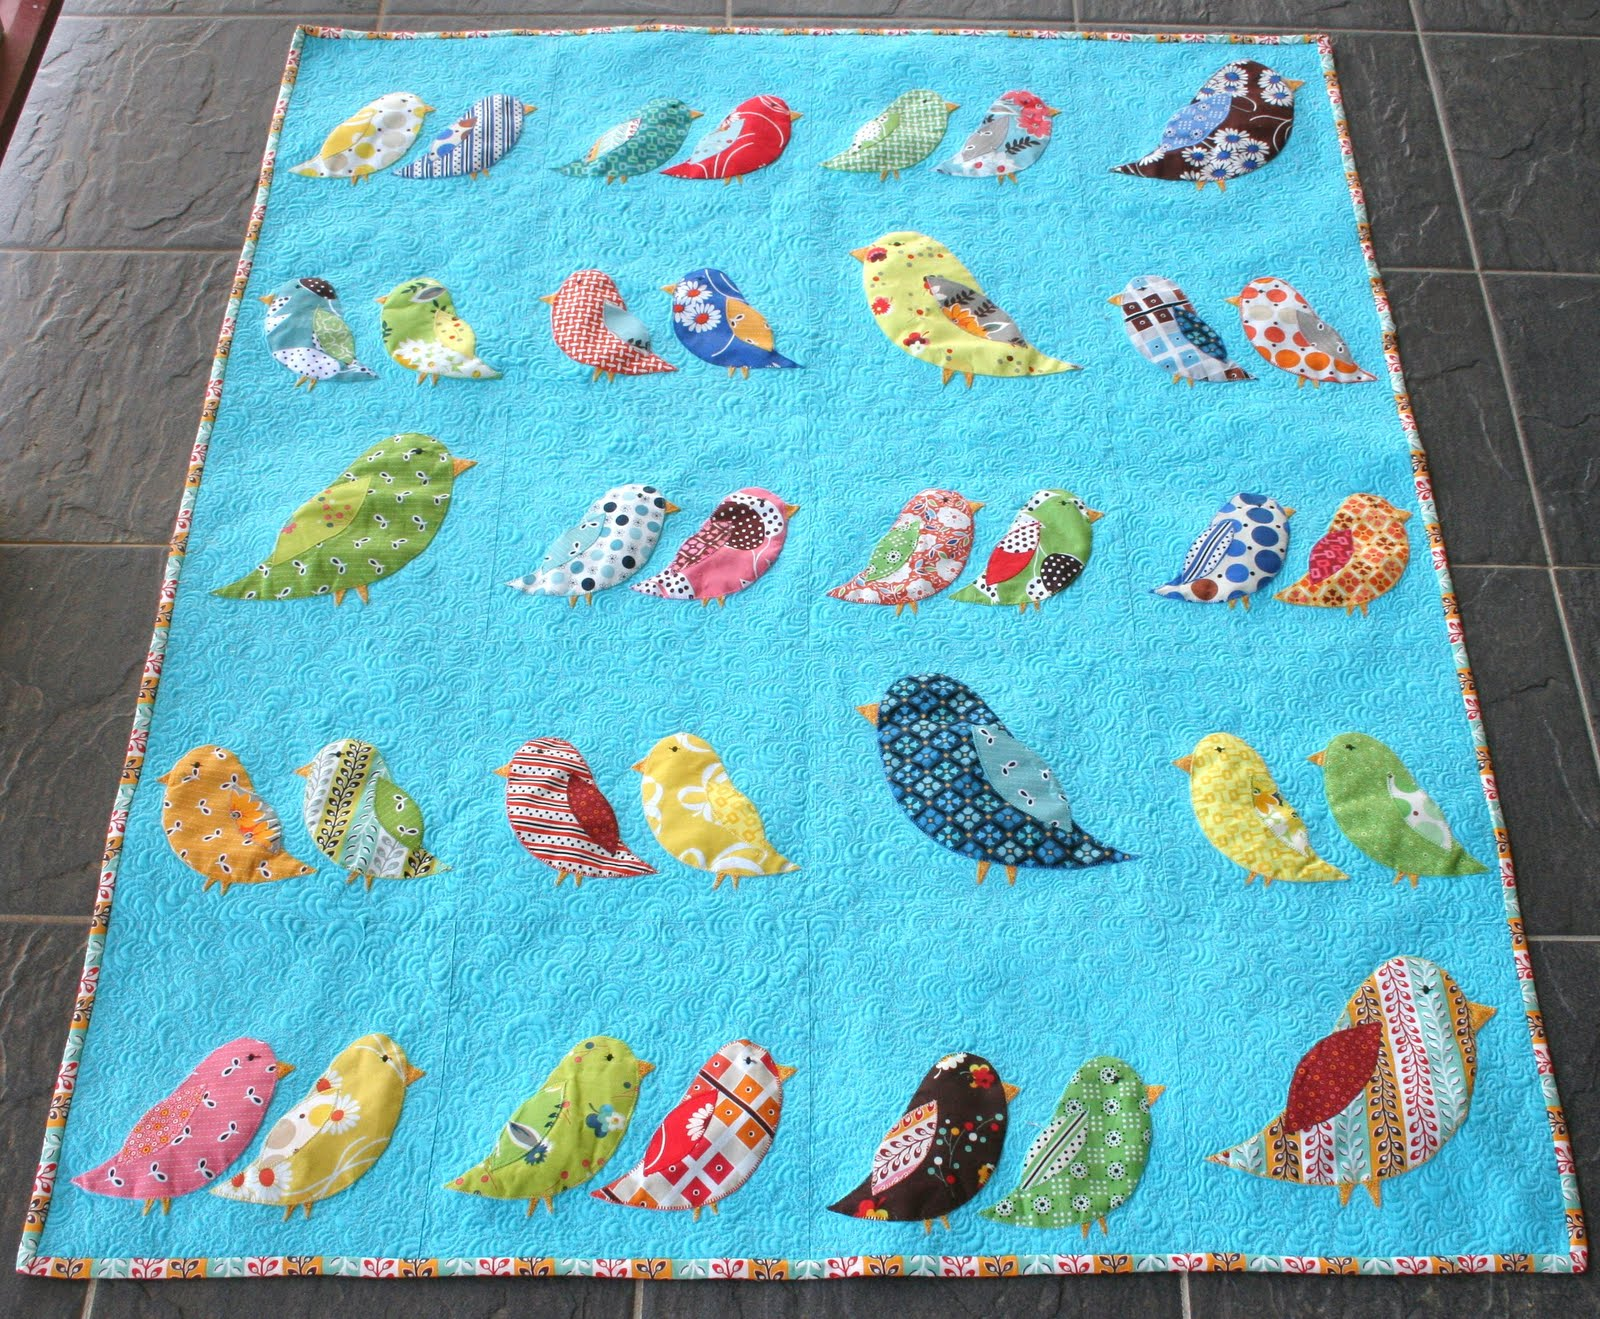 Gone Aussie Quilting: Birds of a Feather Quilt Finished : bird quilt pattern - Adamdwight.com